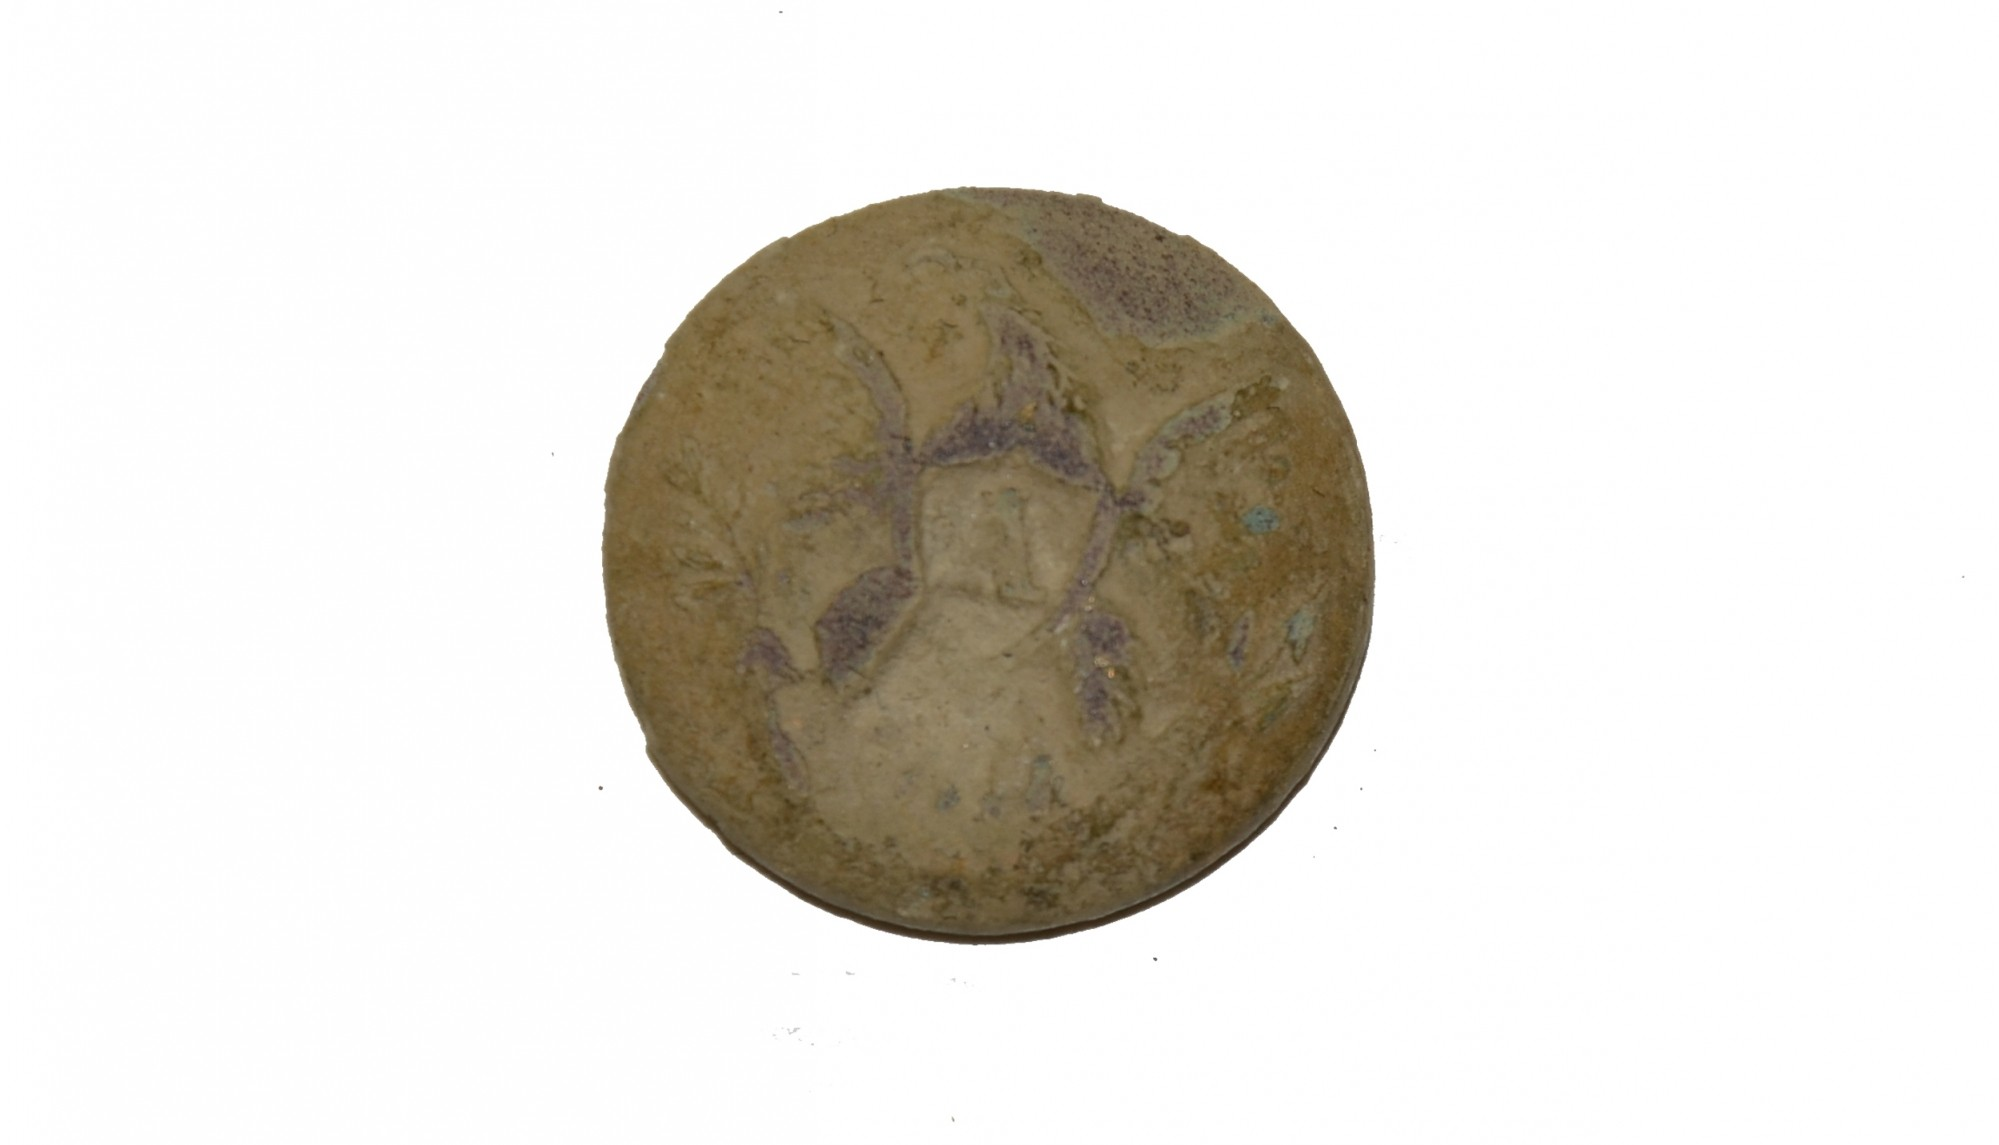 "EAGLE ""A"" COAT BUTTON RECOVERED NEAR CULP'S HILL"